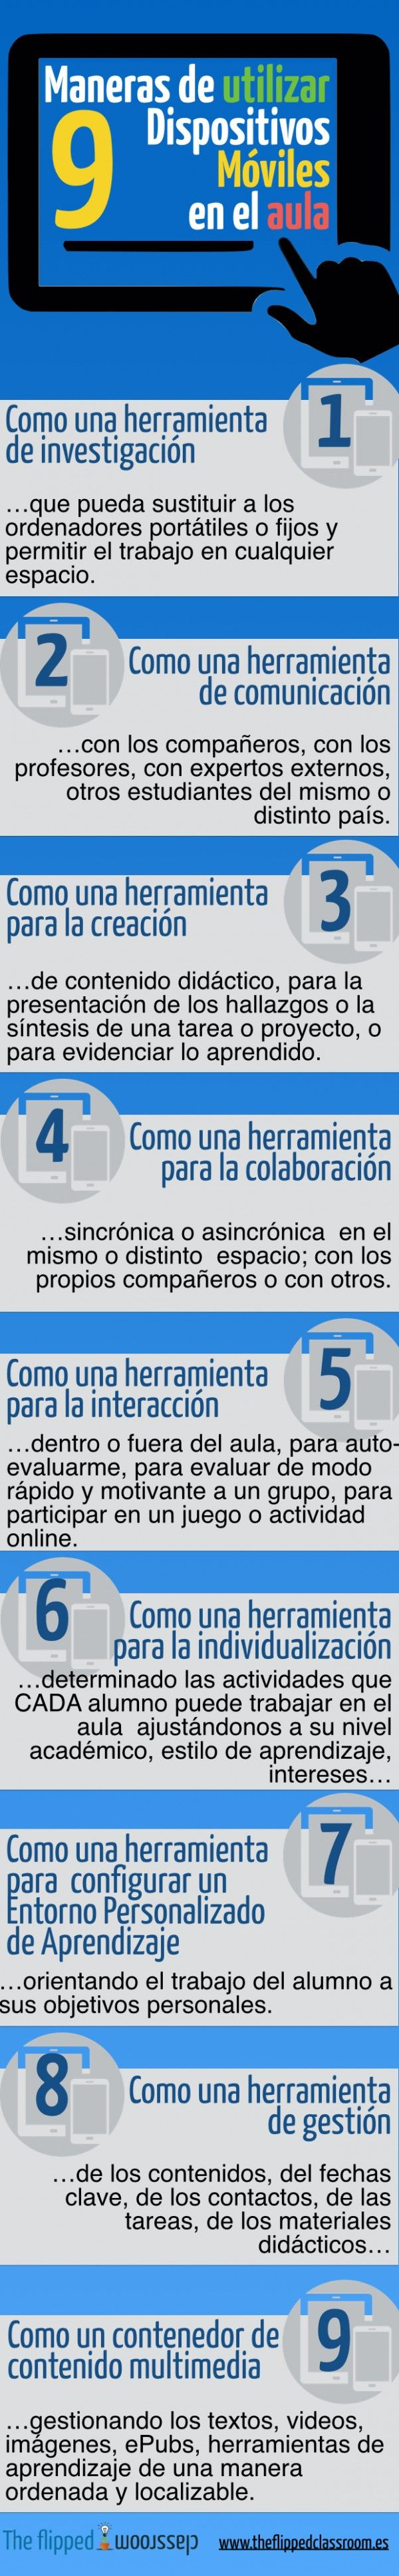 DispositivosMóvilesAula9FormasApoyarAprendizaje-Infografía-BlogGesvin